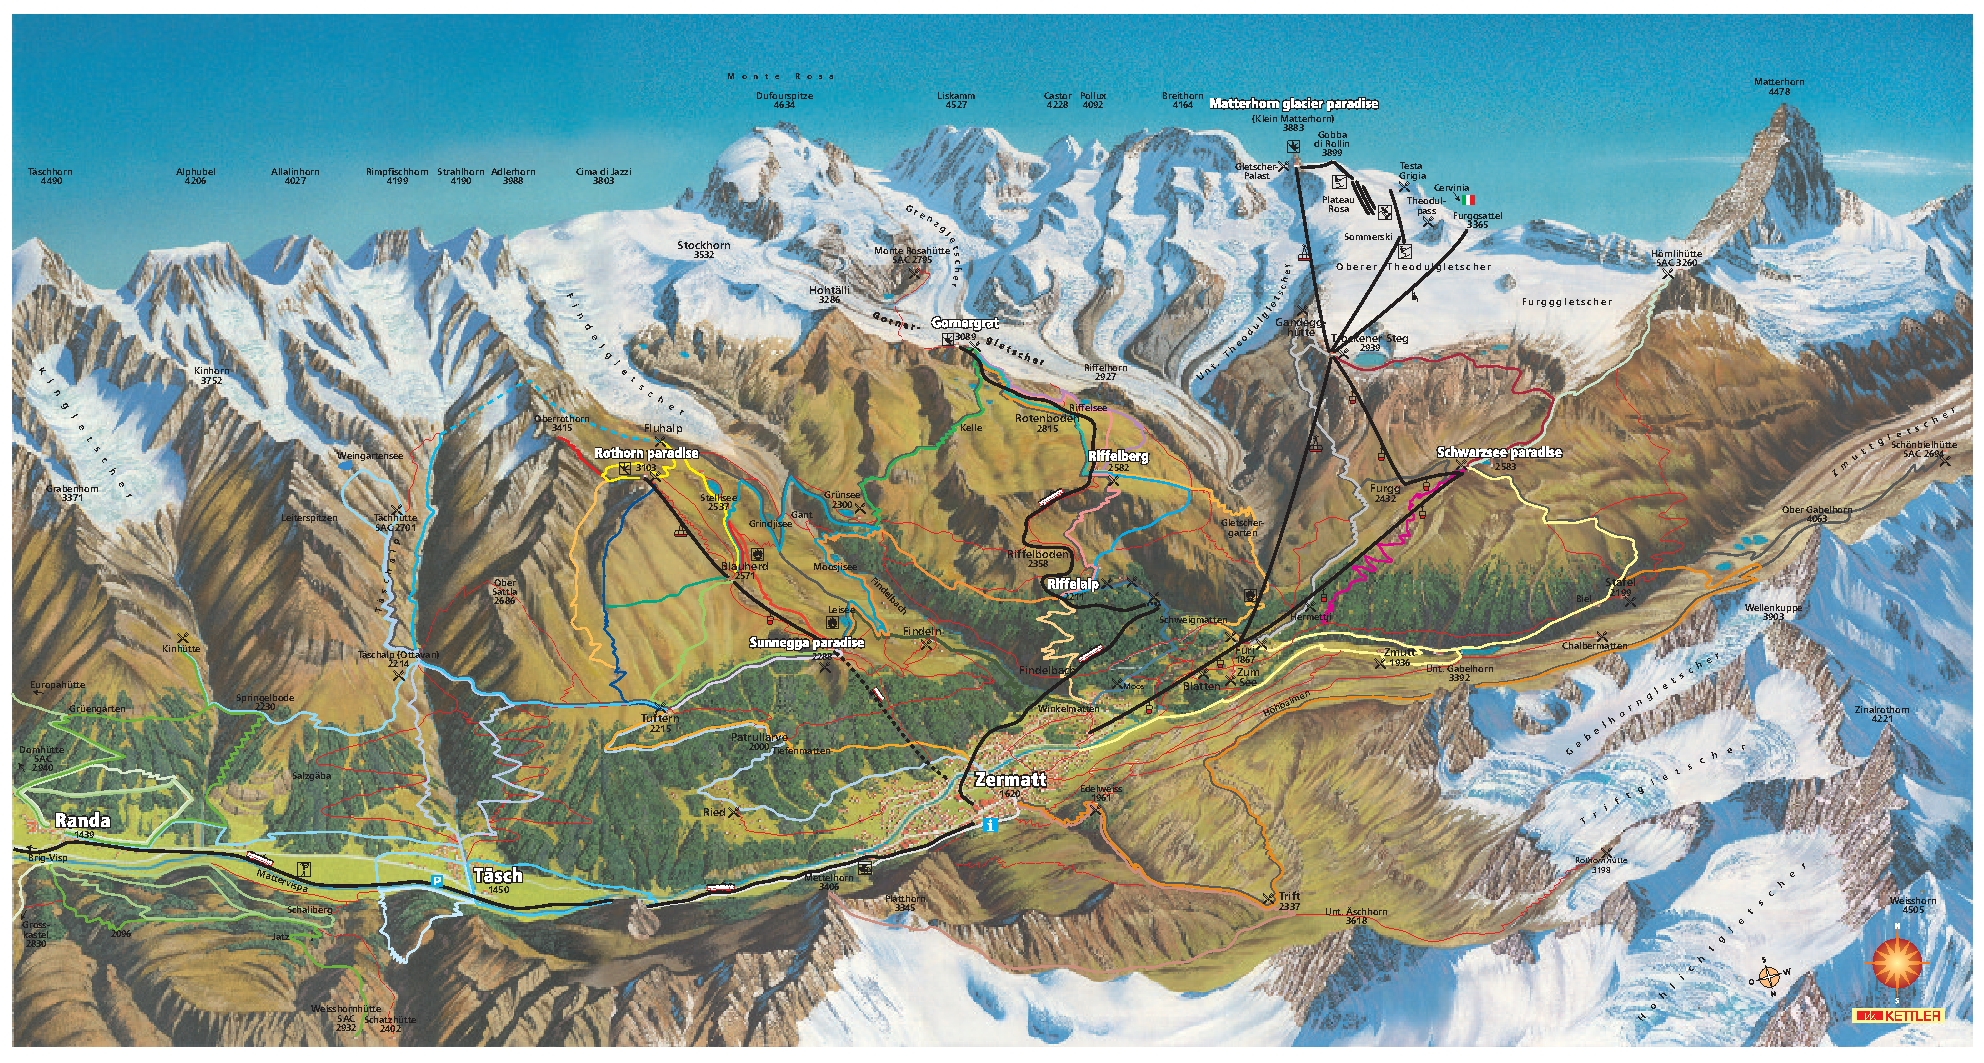 Full Size Piste Map For Zermatt